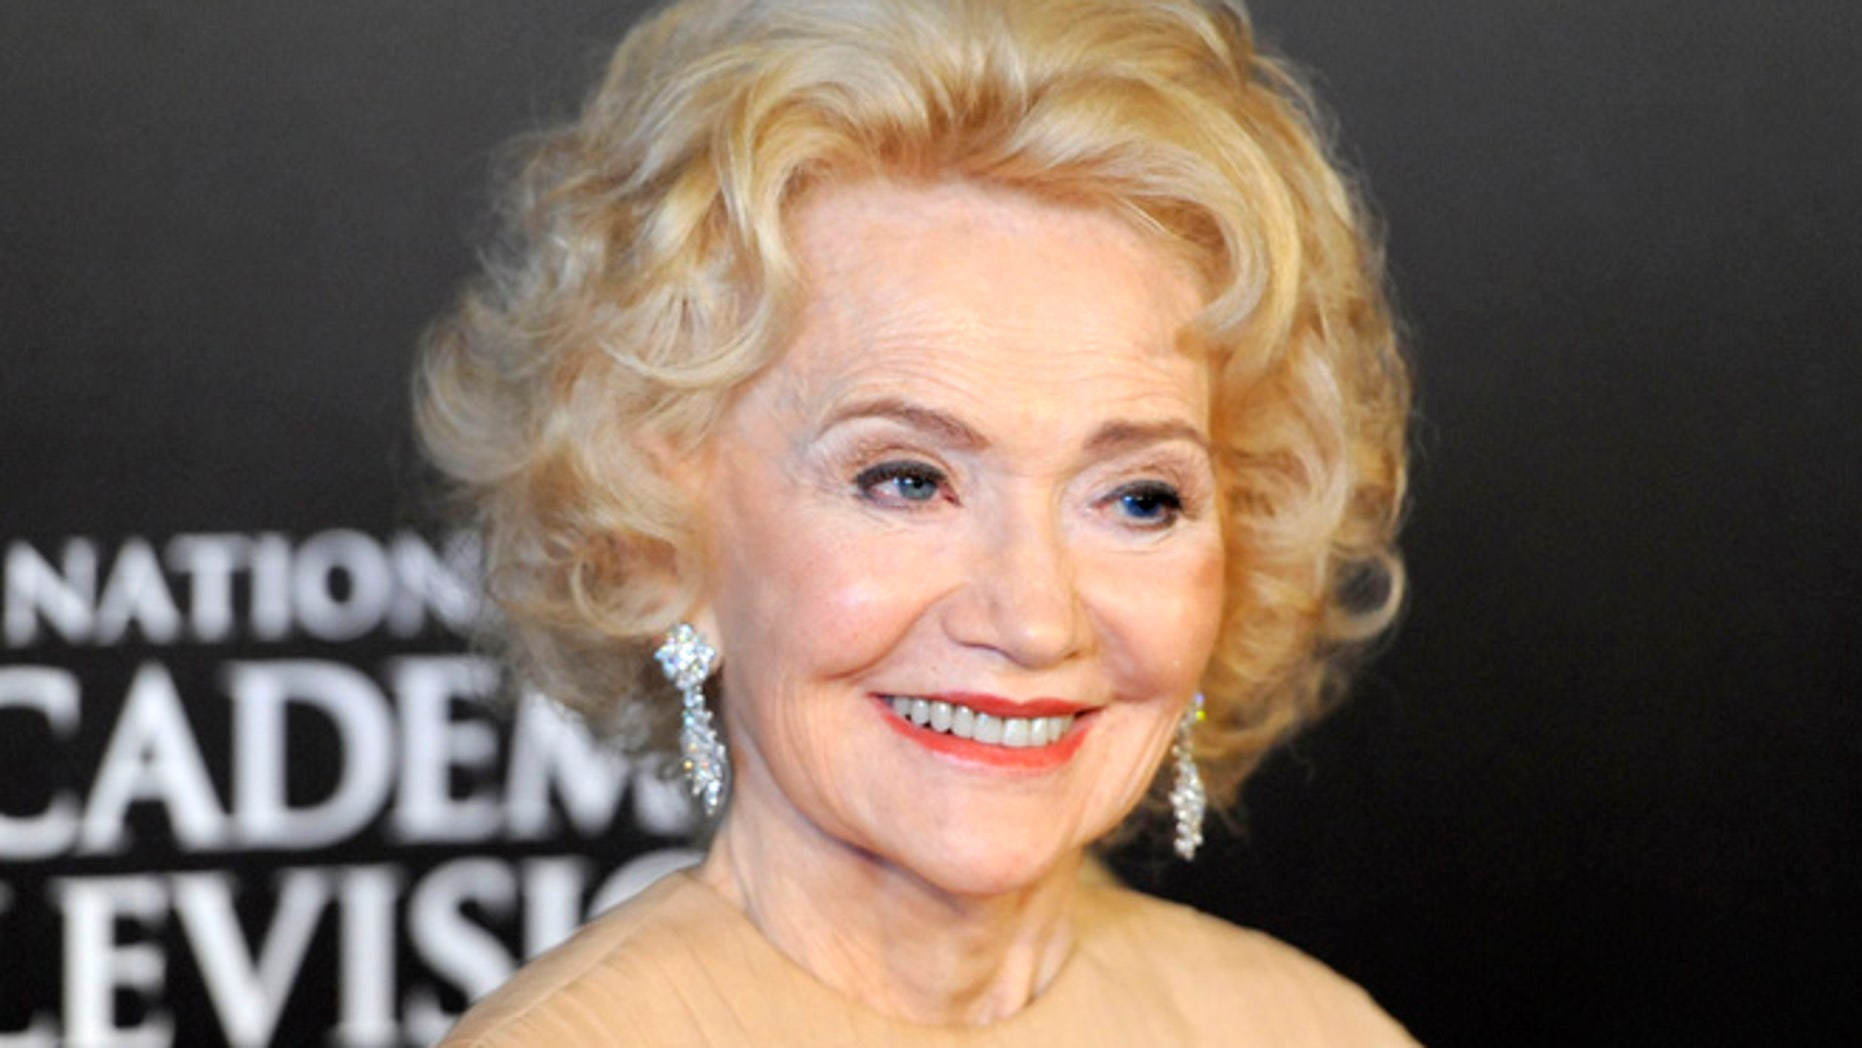 FILE - In this June 27, 2010 file photo, Agnes Nixon arrives at the 37th Annual Daytime Emmy Awards in Las Vegas.